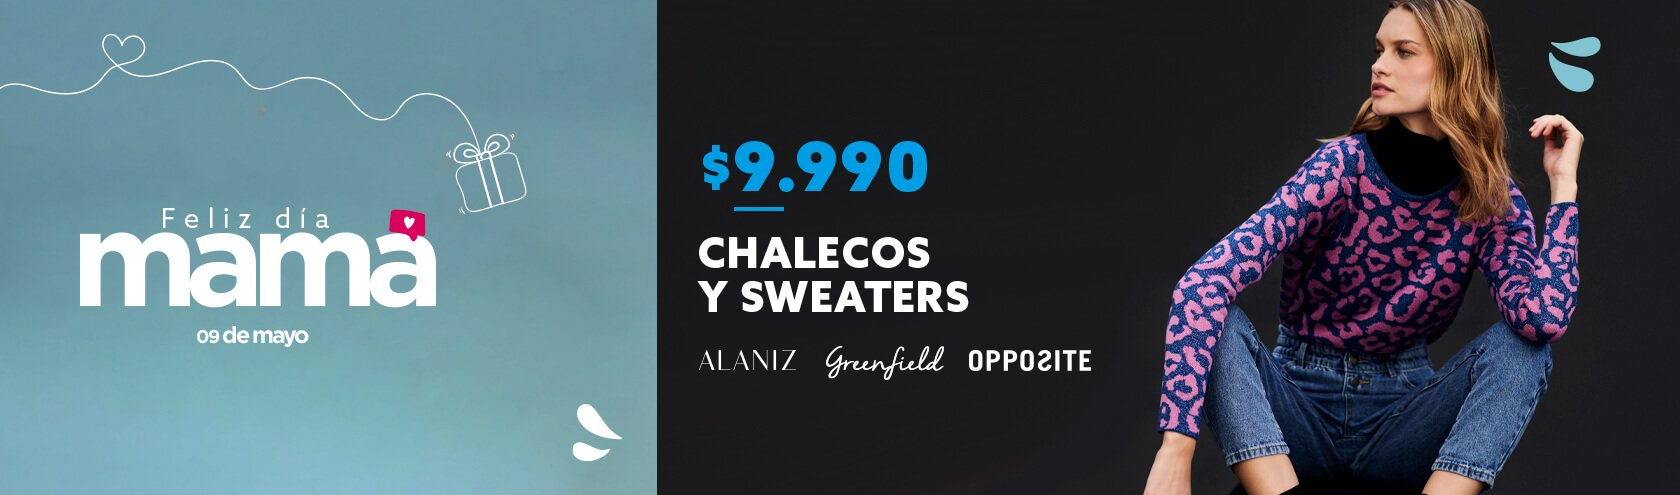 Chalecos y sweaters a $9.990